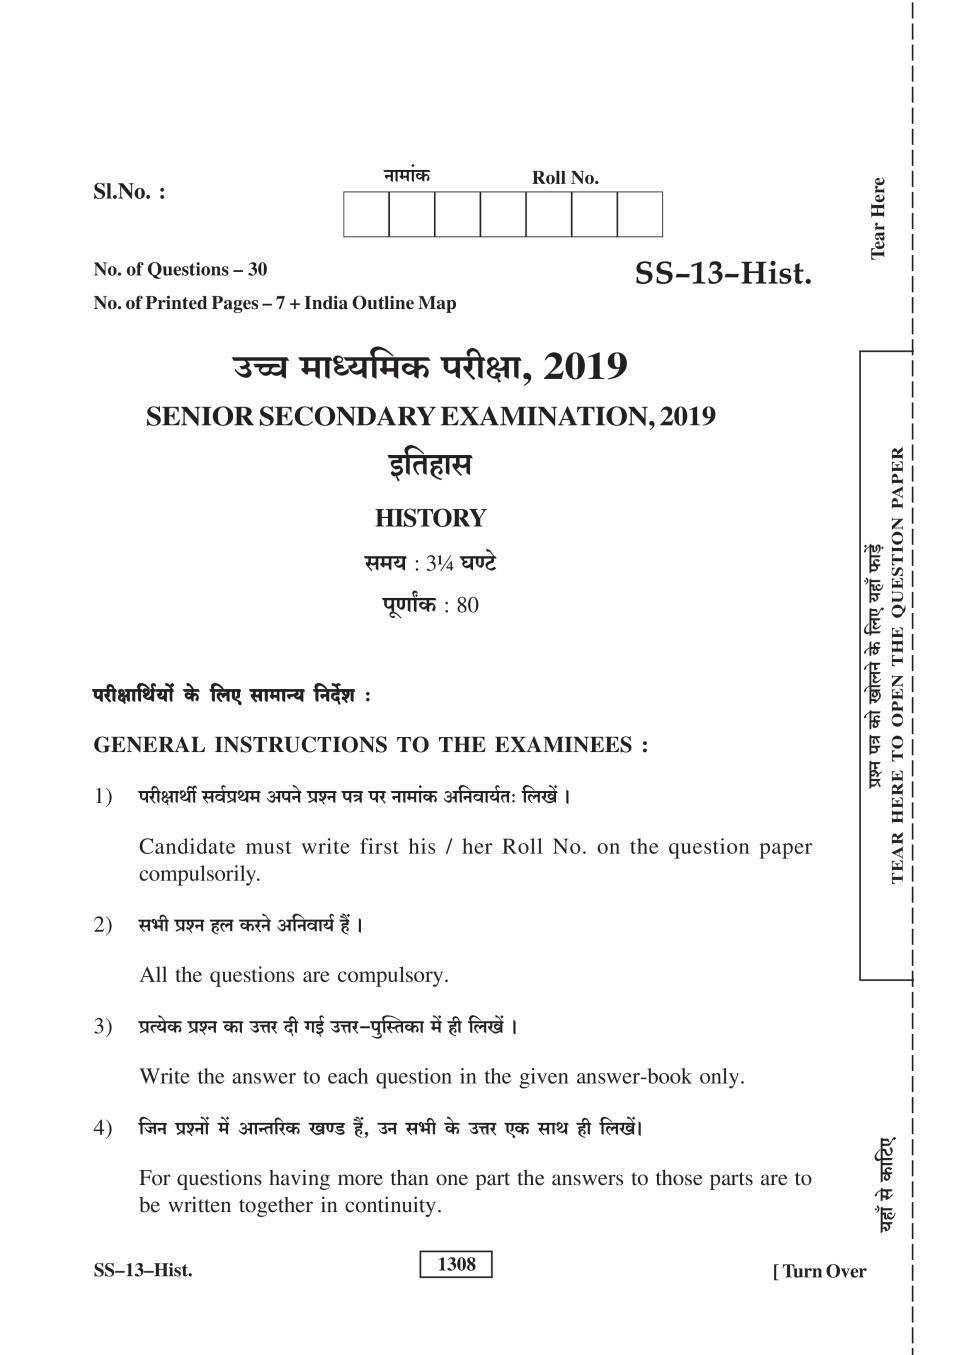 Rajasthan Board Sr. Secondary History Question Paper